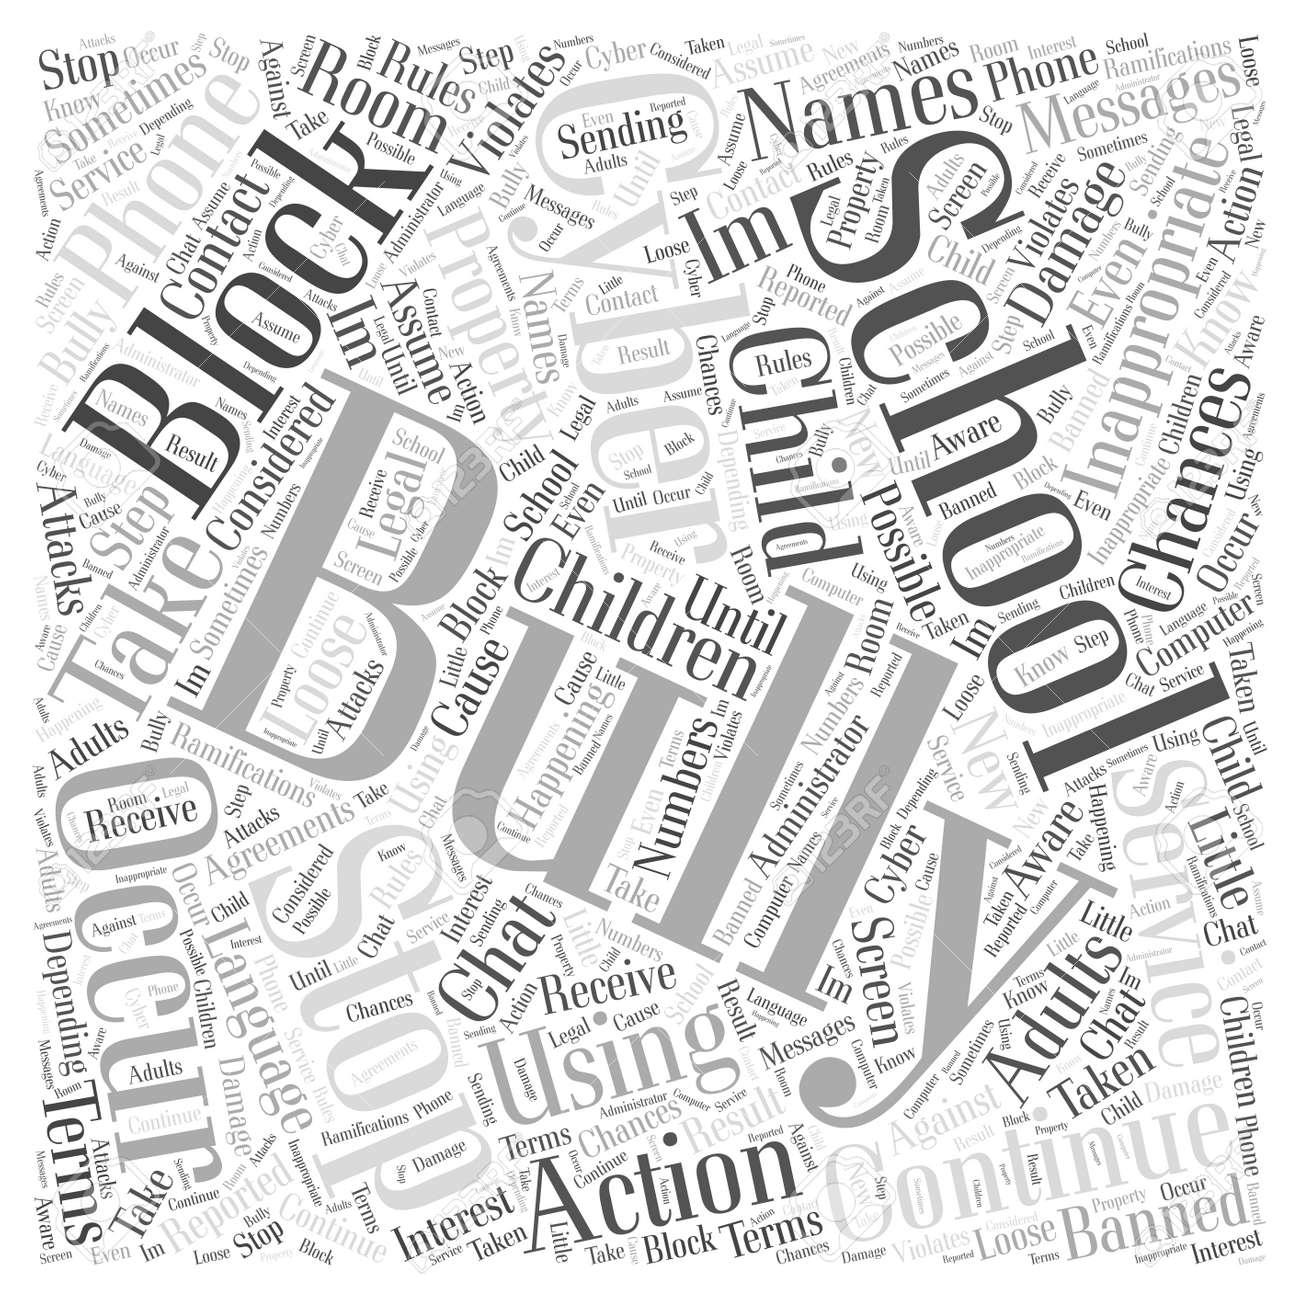 hight resolution of how to stop cyber bullying word cloud concept stock vector 67216145